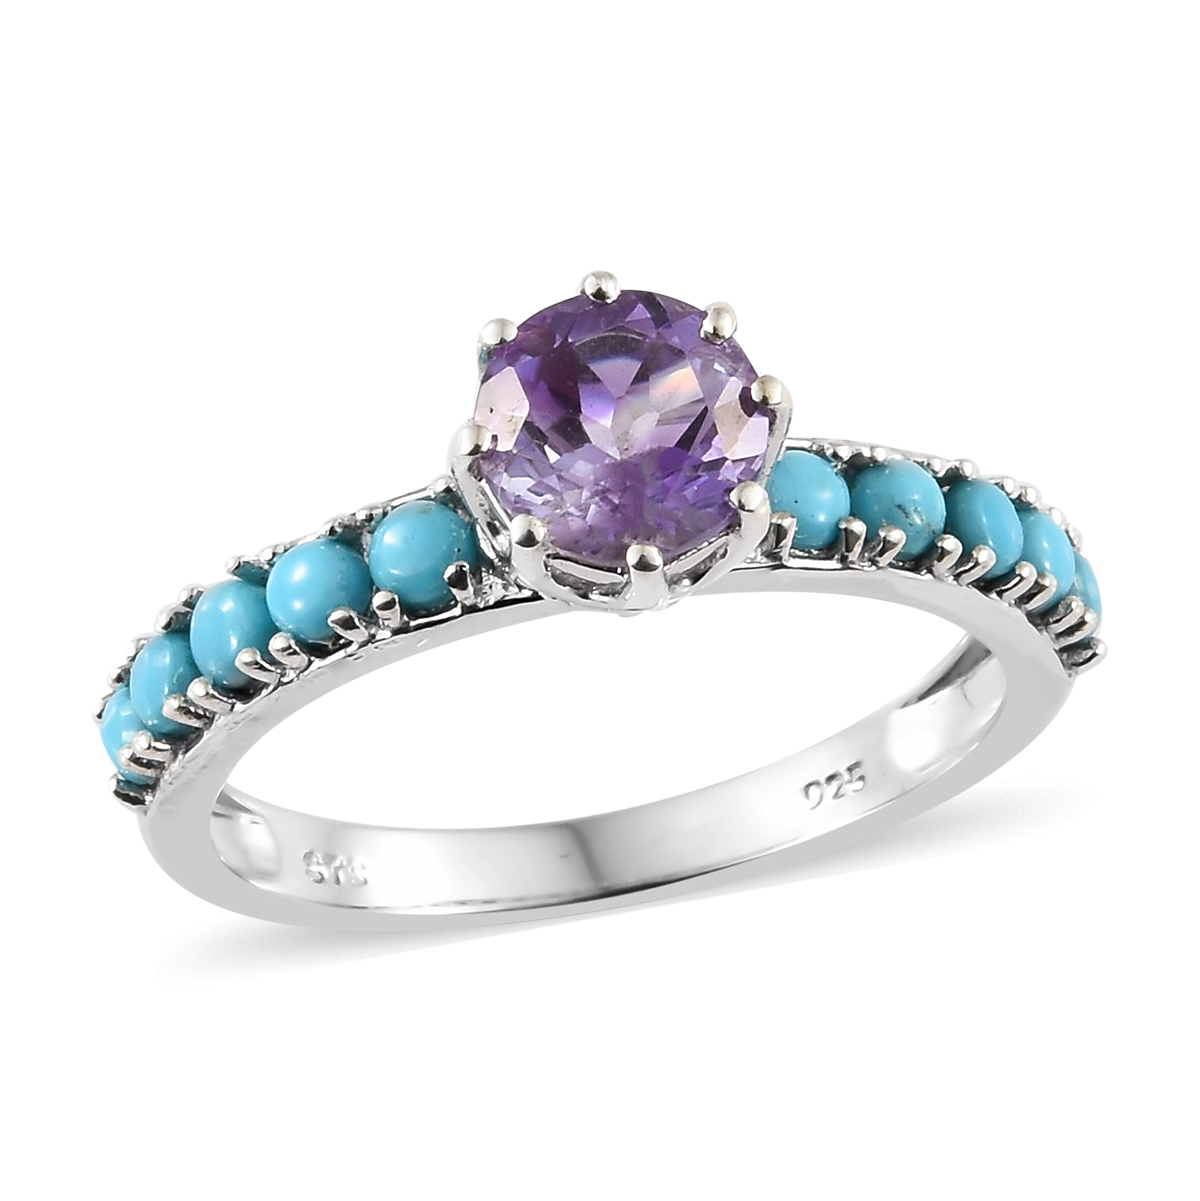 brand new 495c4 8eb75 Rose De Maroc Amethyst, Arizona Sleeping Beauty Turquoise Platinum Over  Sterling Silver Ring (Size 10.0) TGW 1.91 cts.